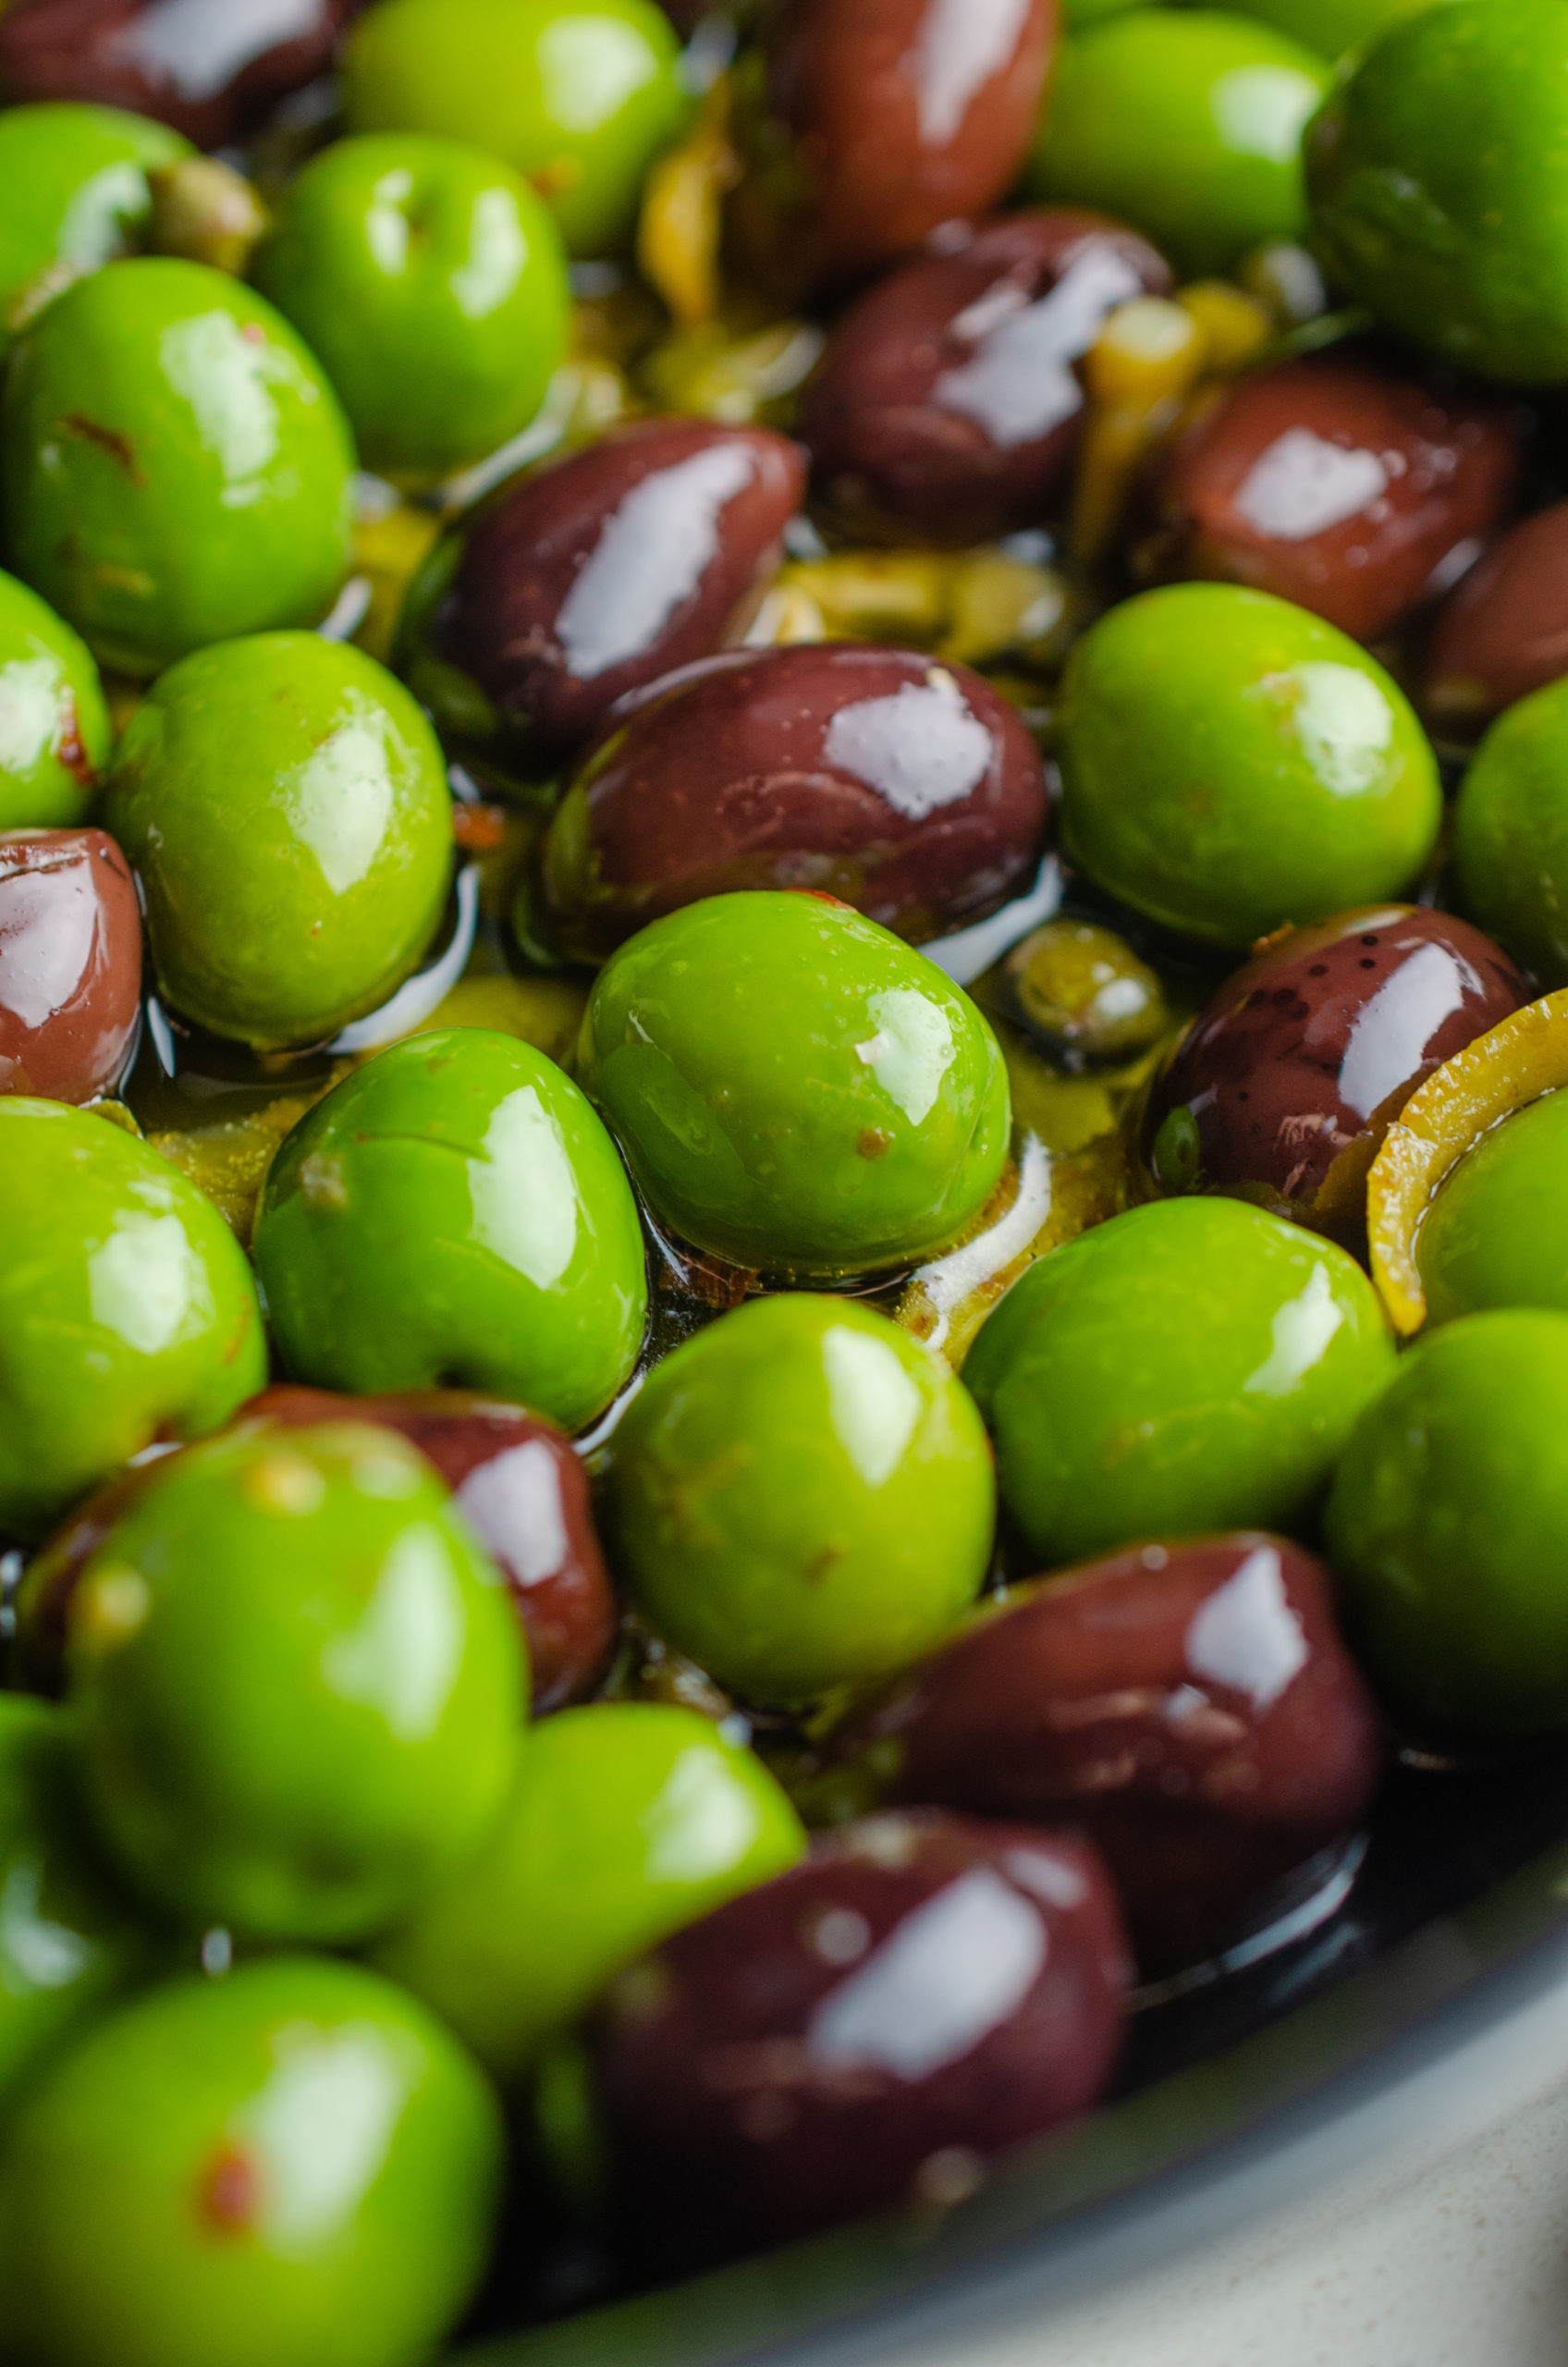 Cooking olives in oil in a pan.